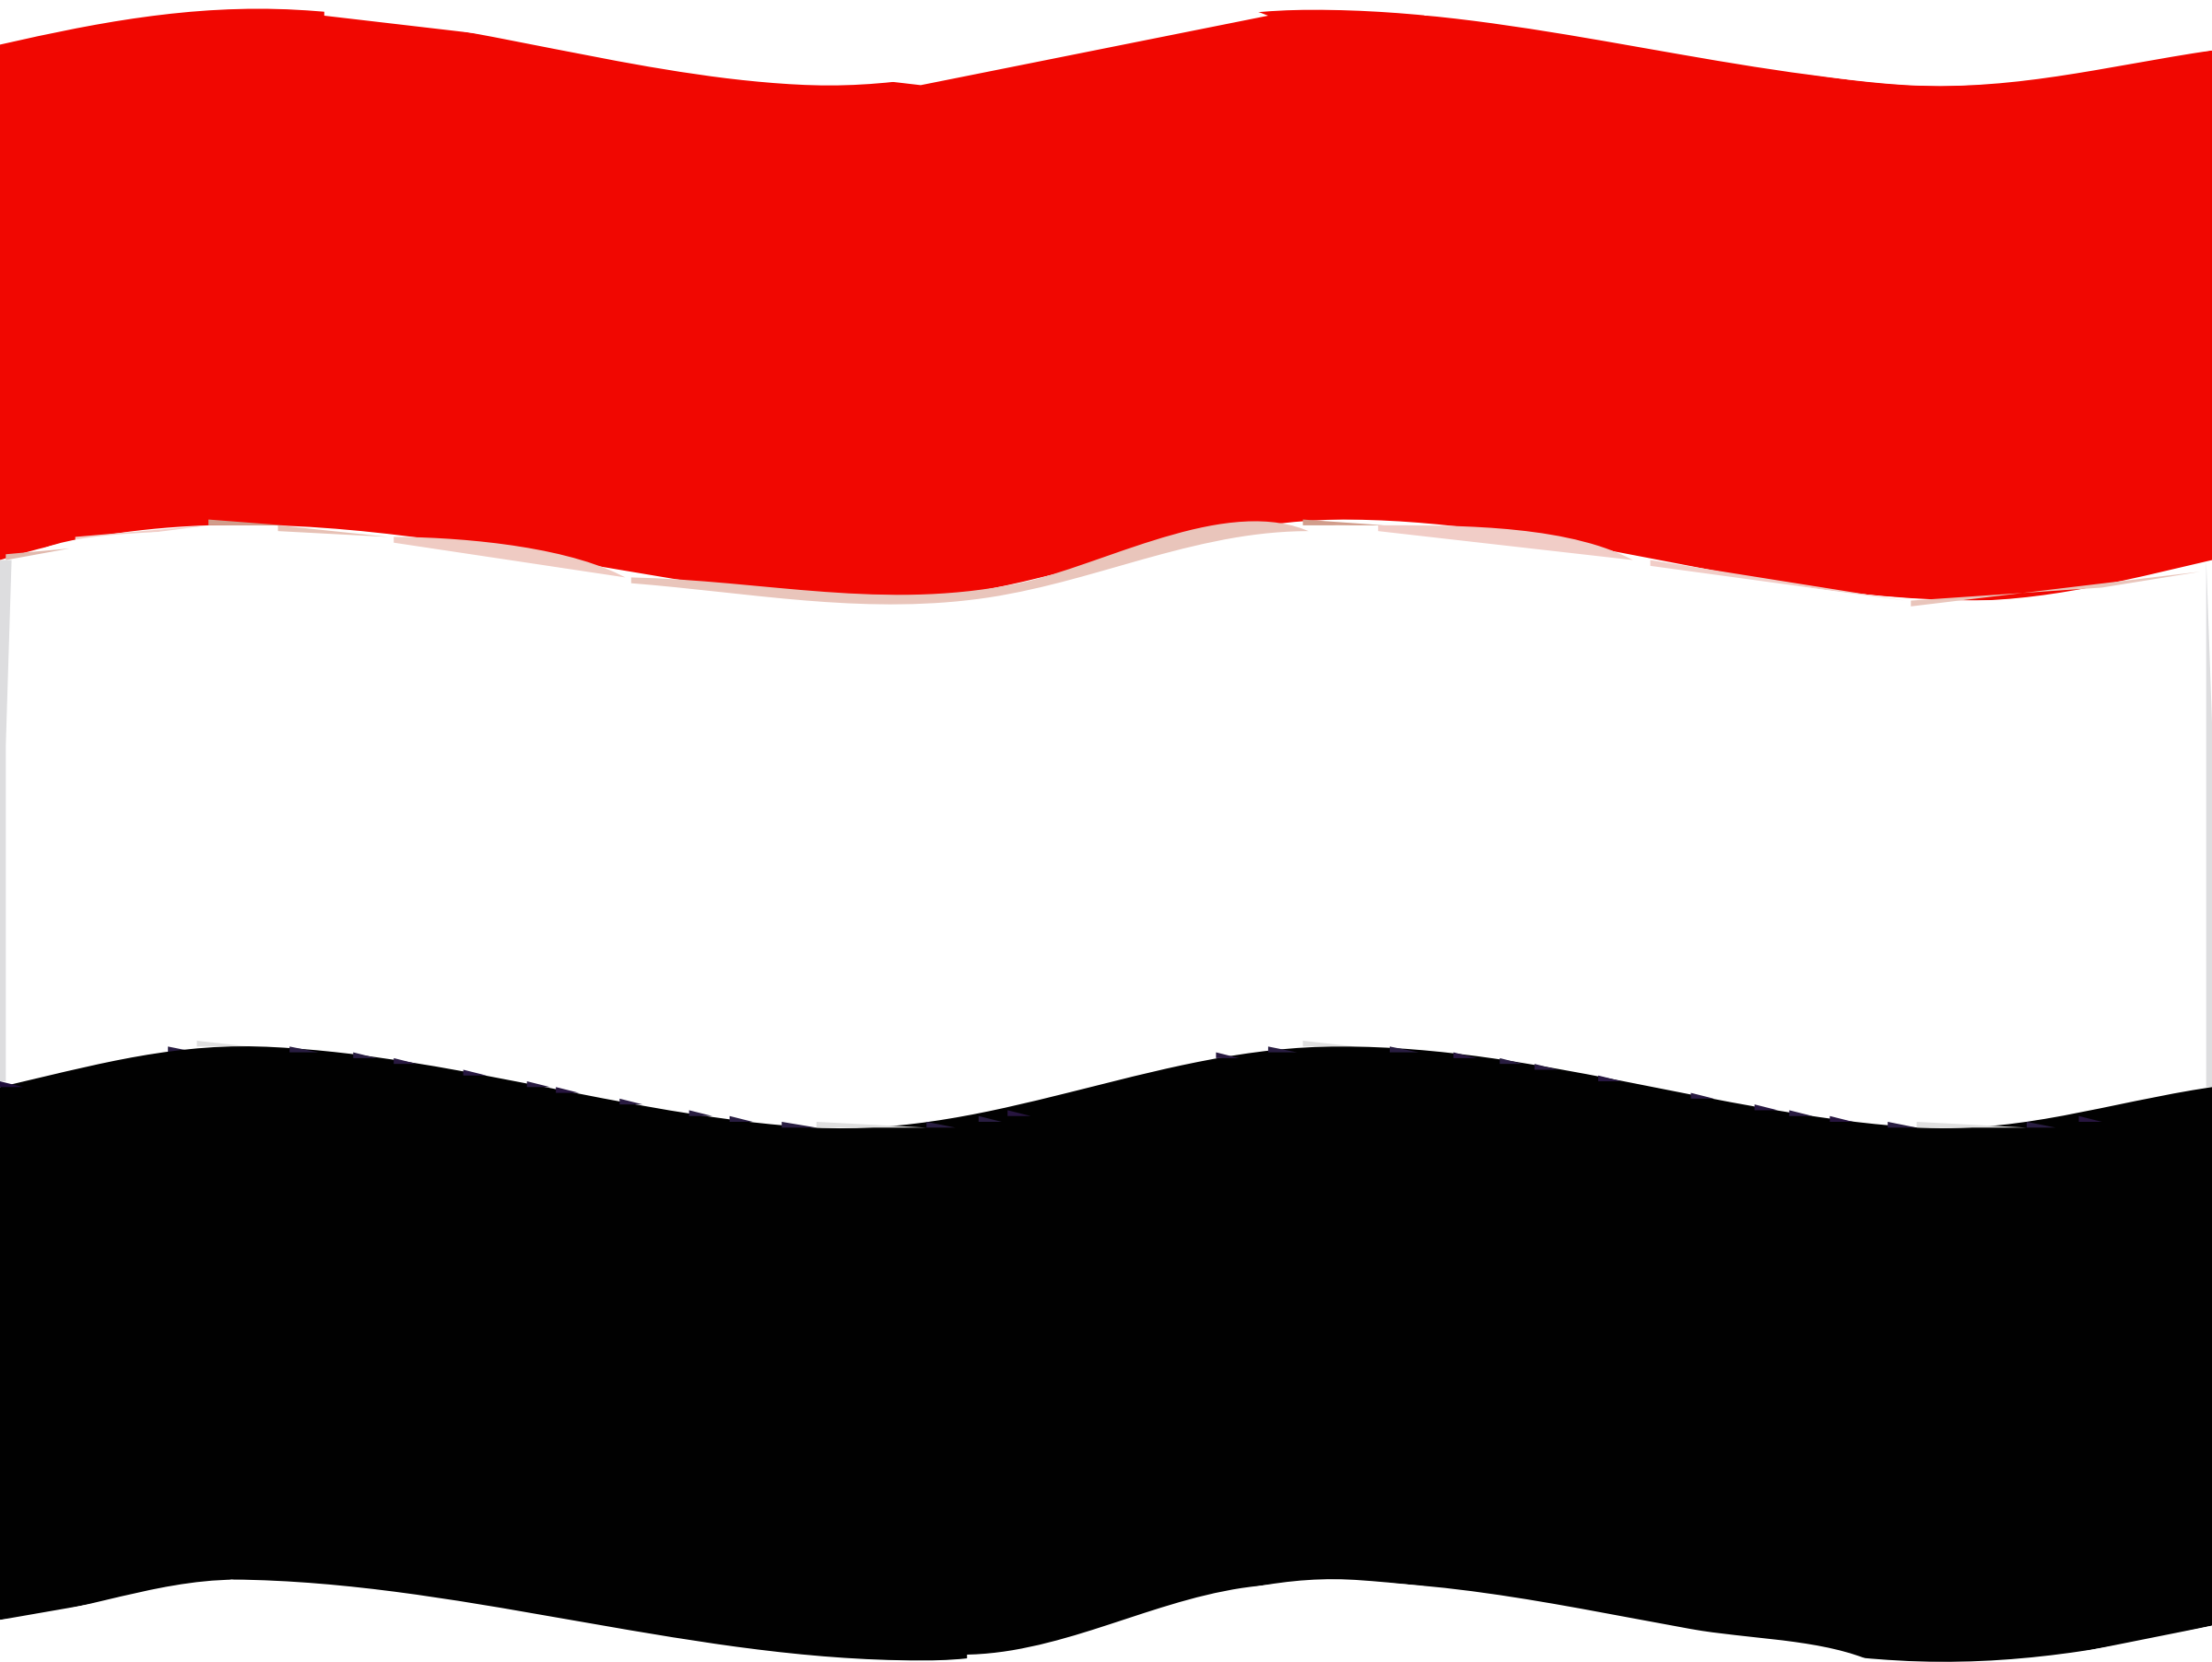 Flag of Yemen by Joesph